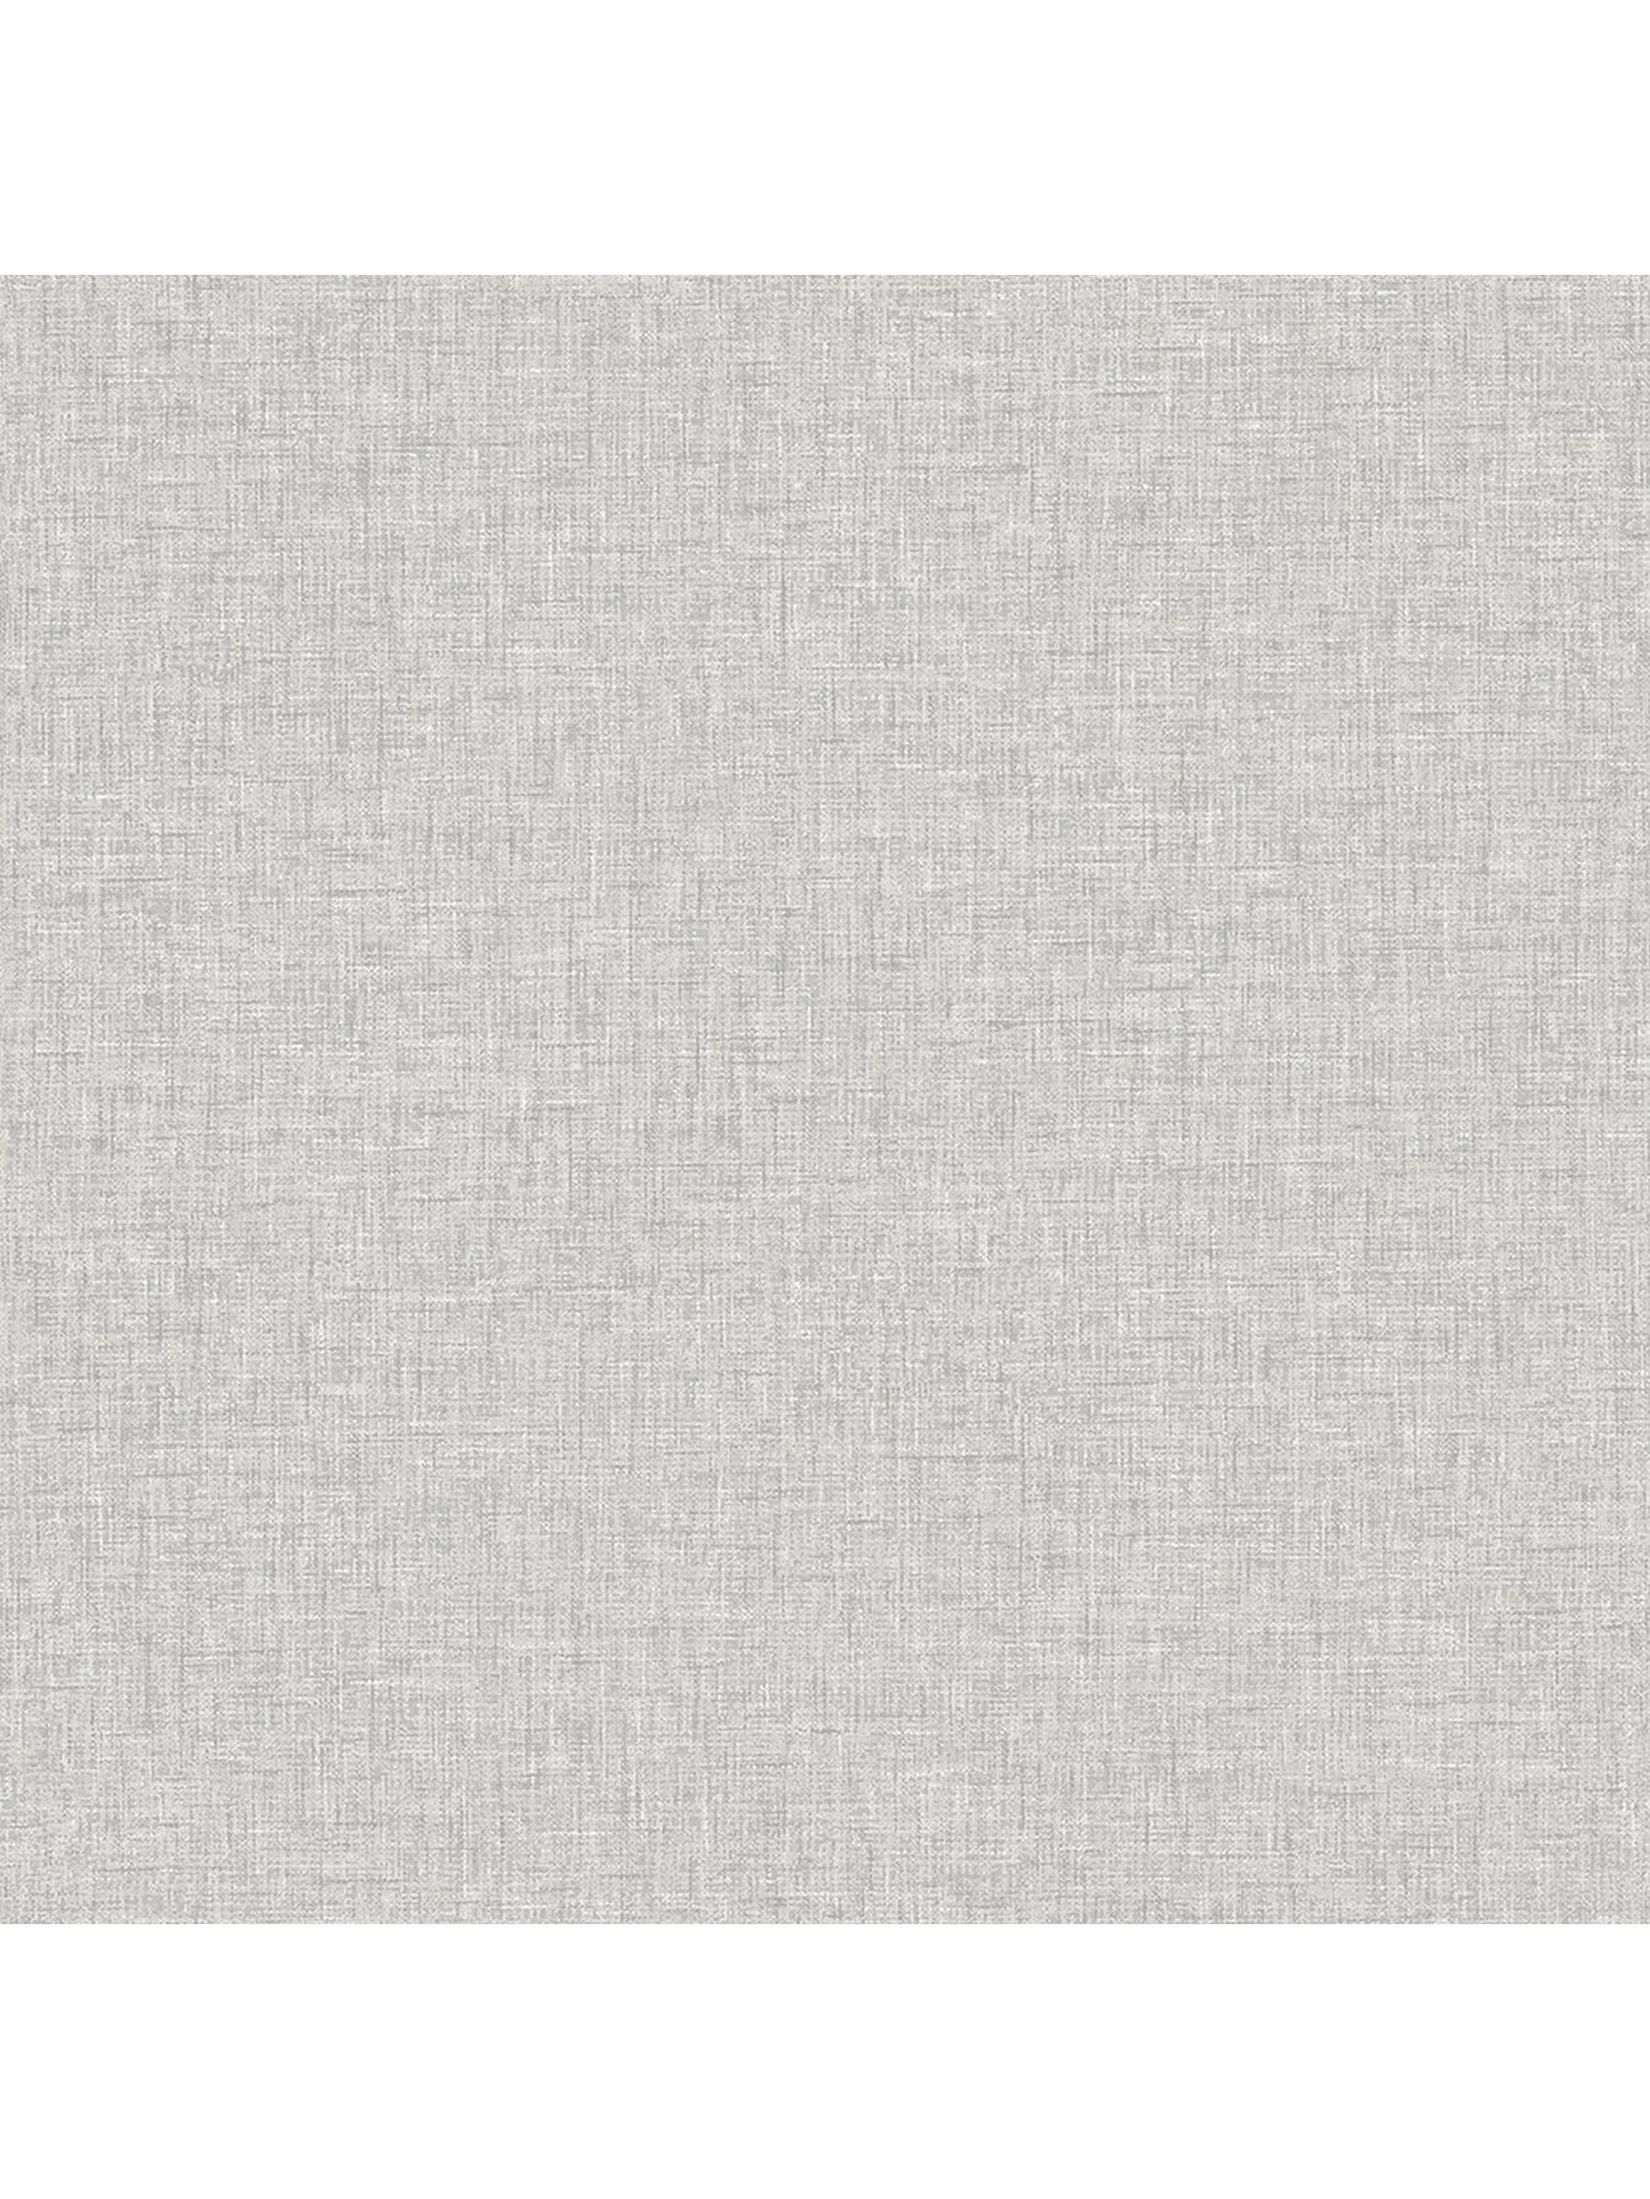 ARTHOUSE Linen Texture Wallpaper Grey (With images